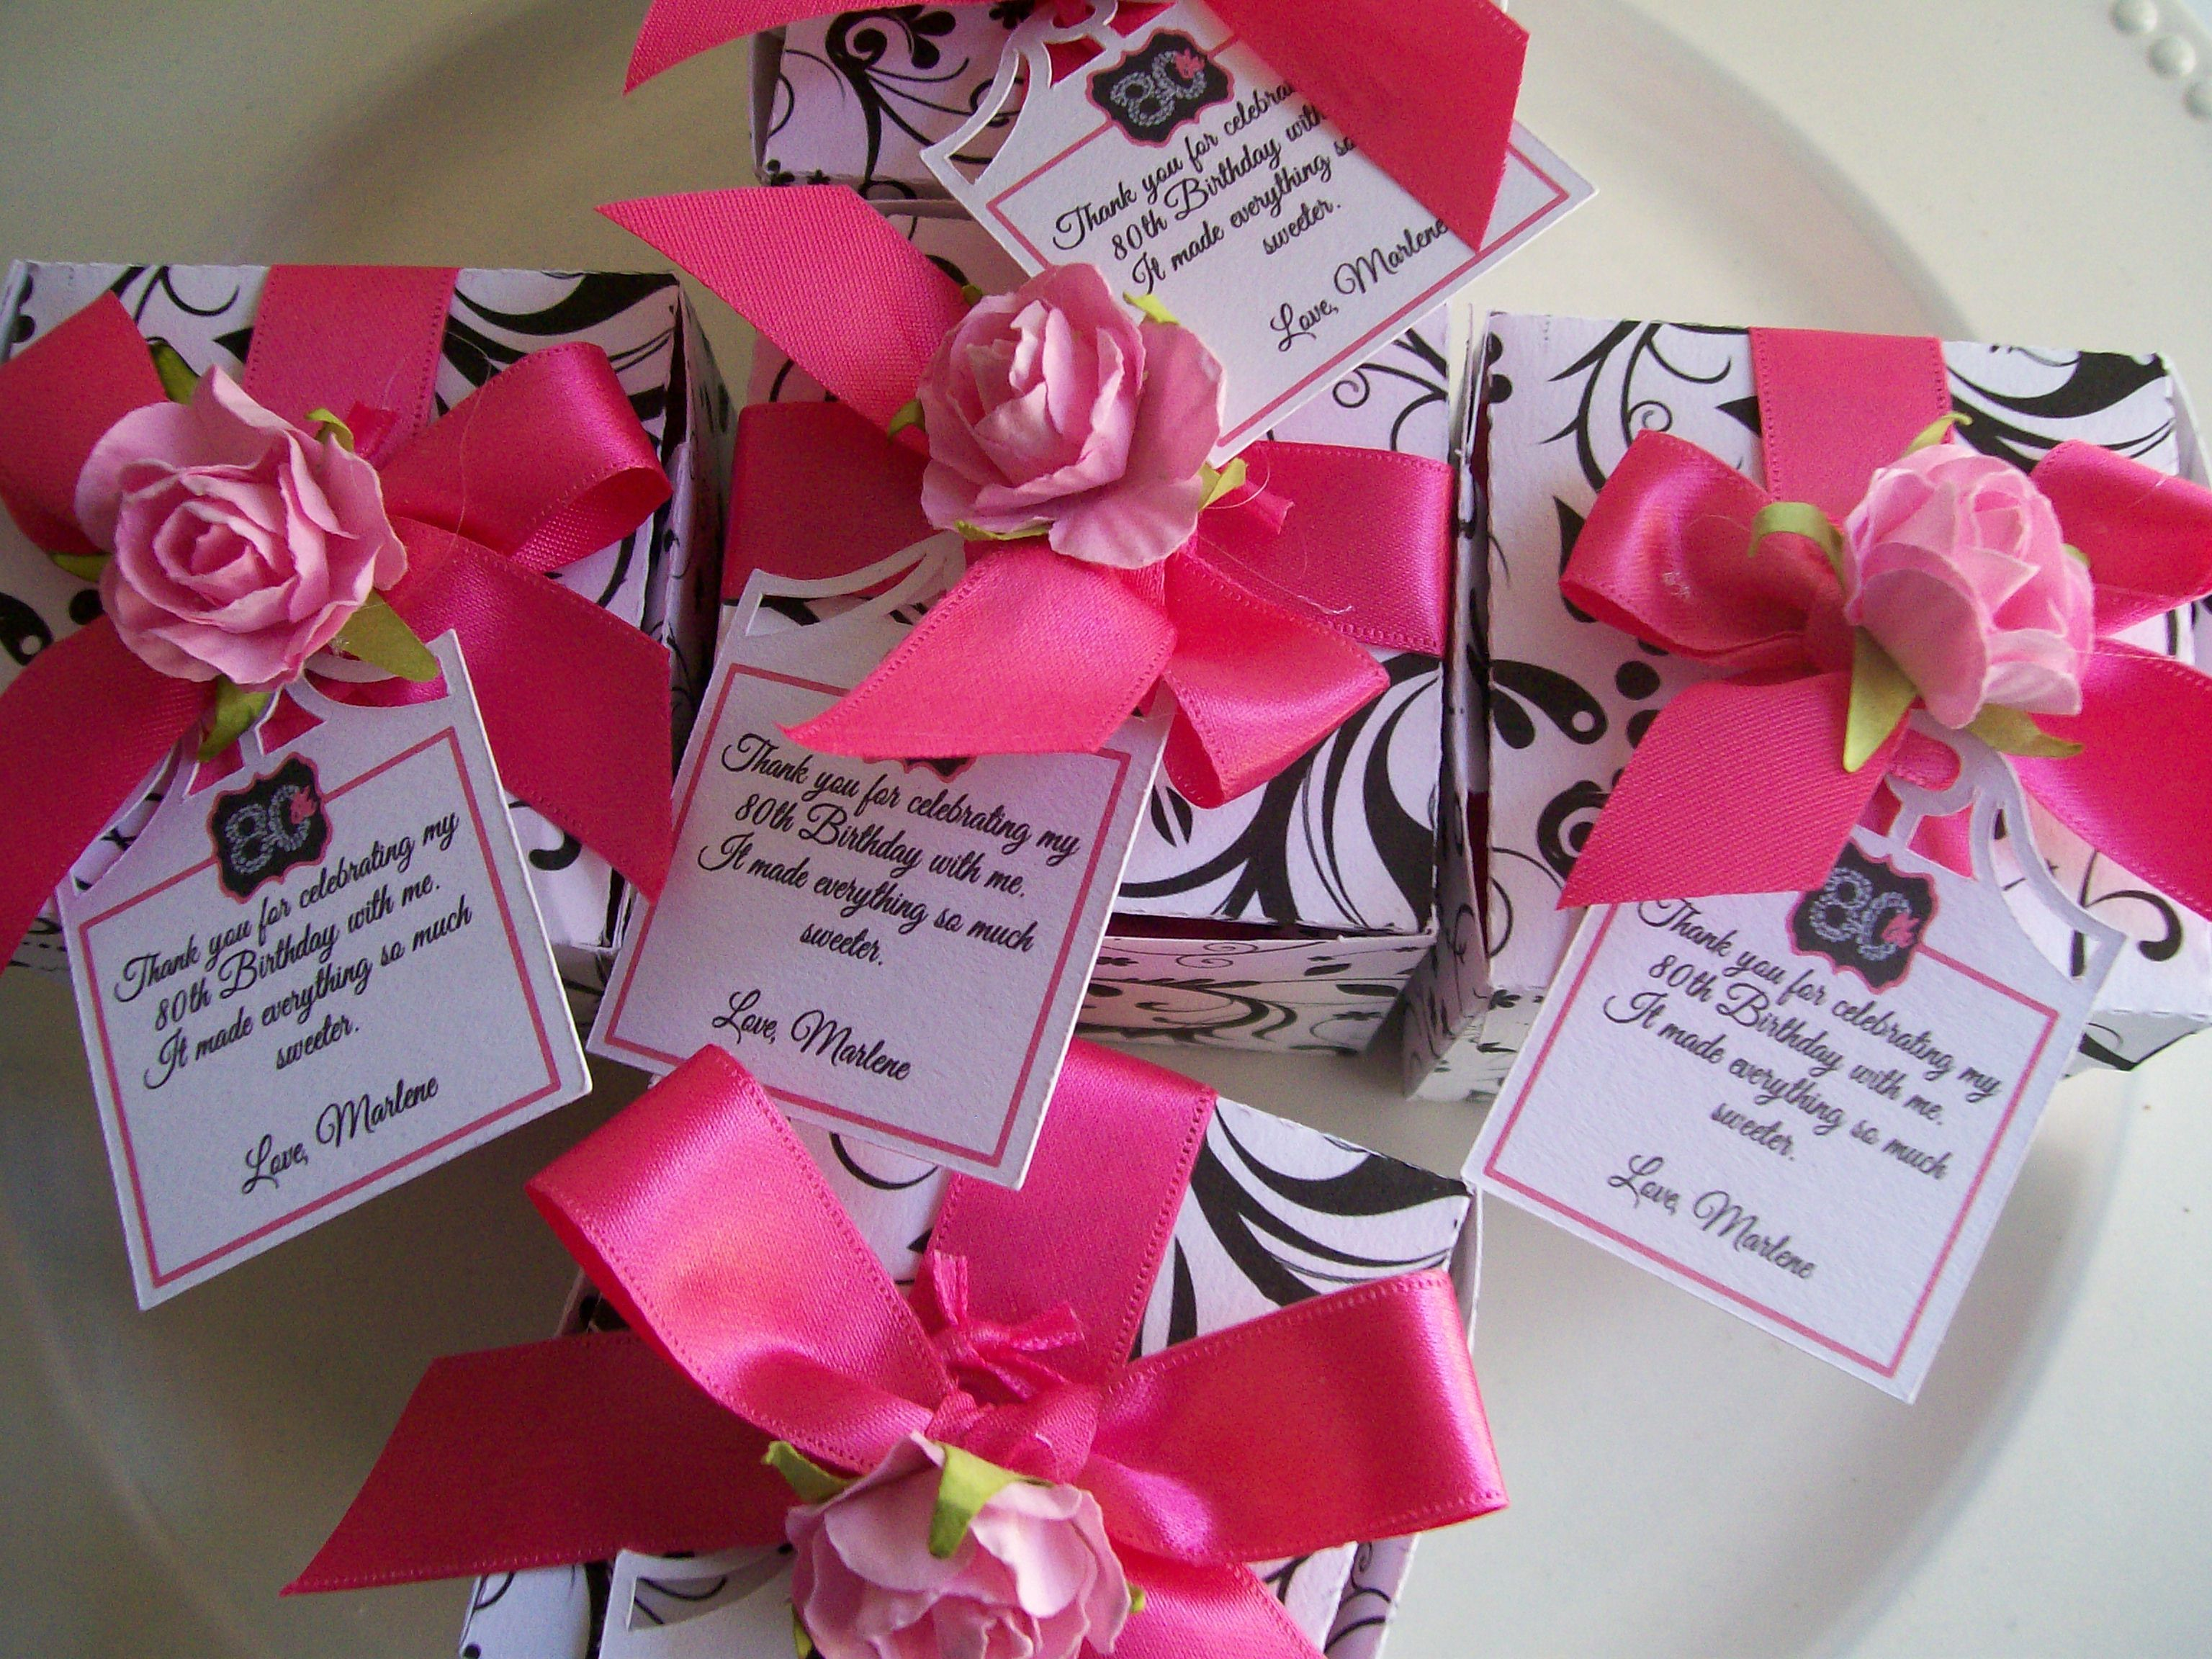 Added Thank You Notes To The 80th Birthday Party Favors